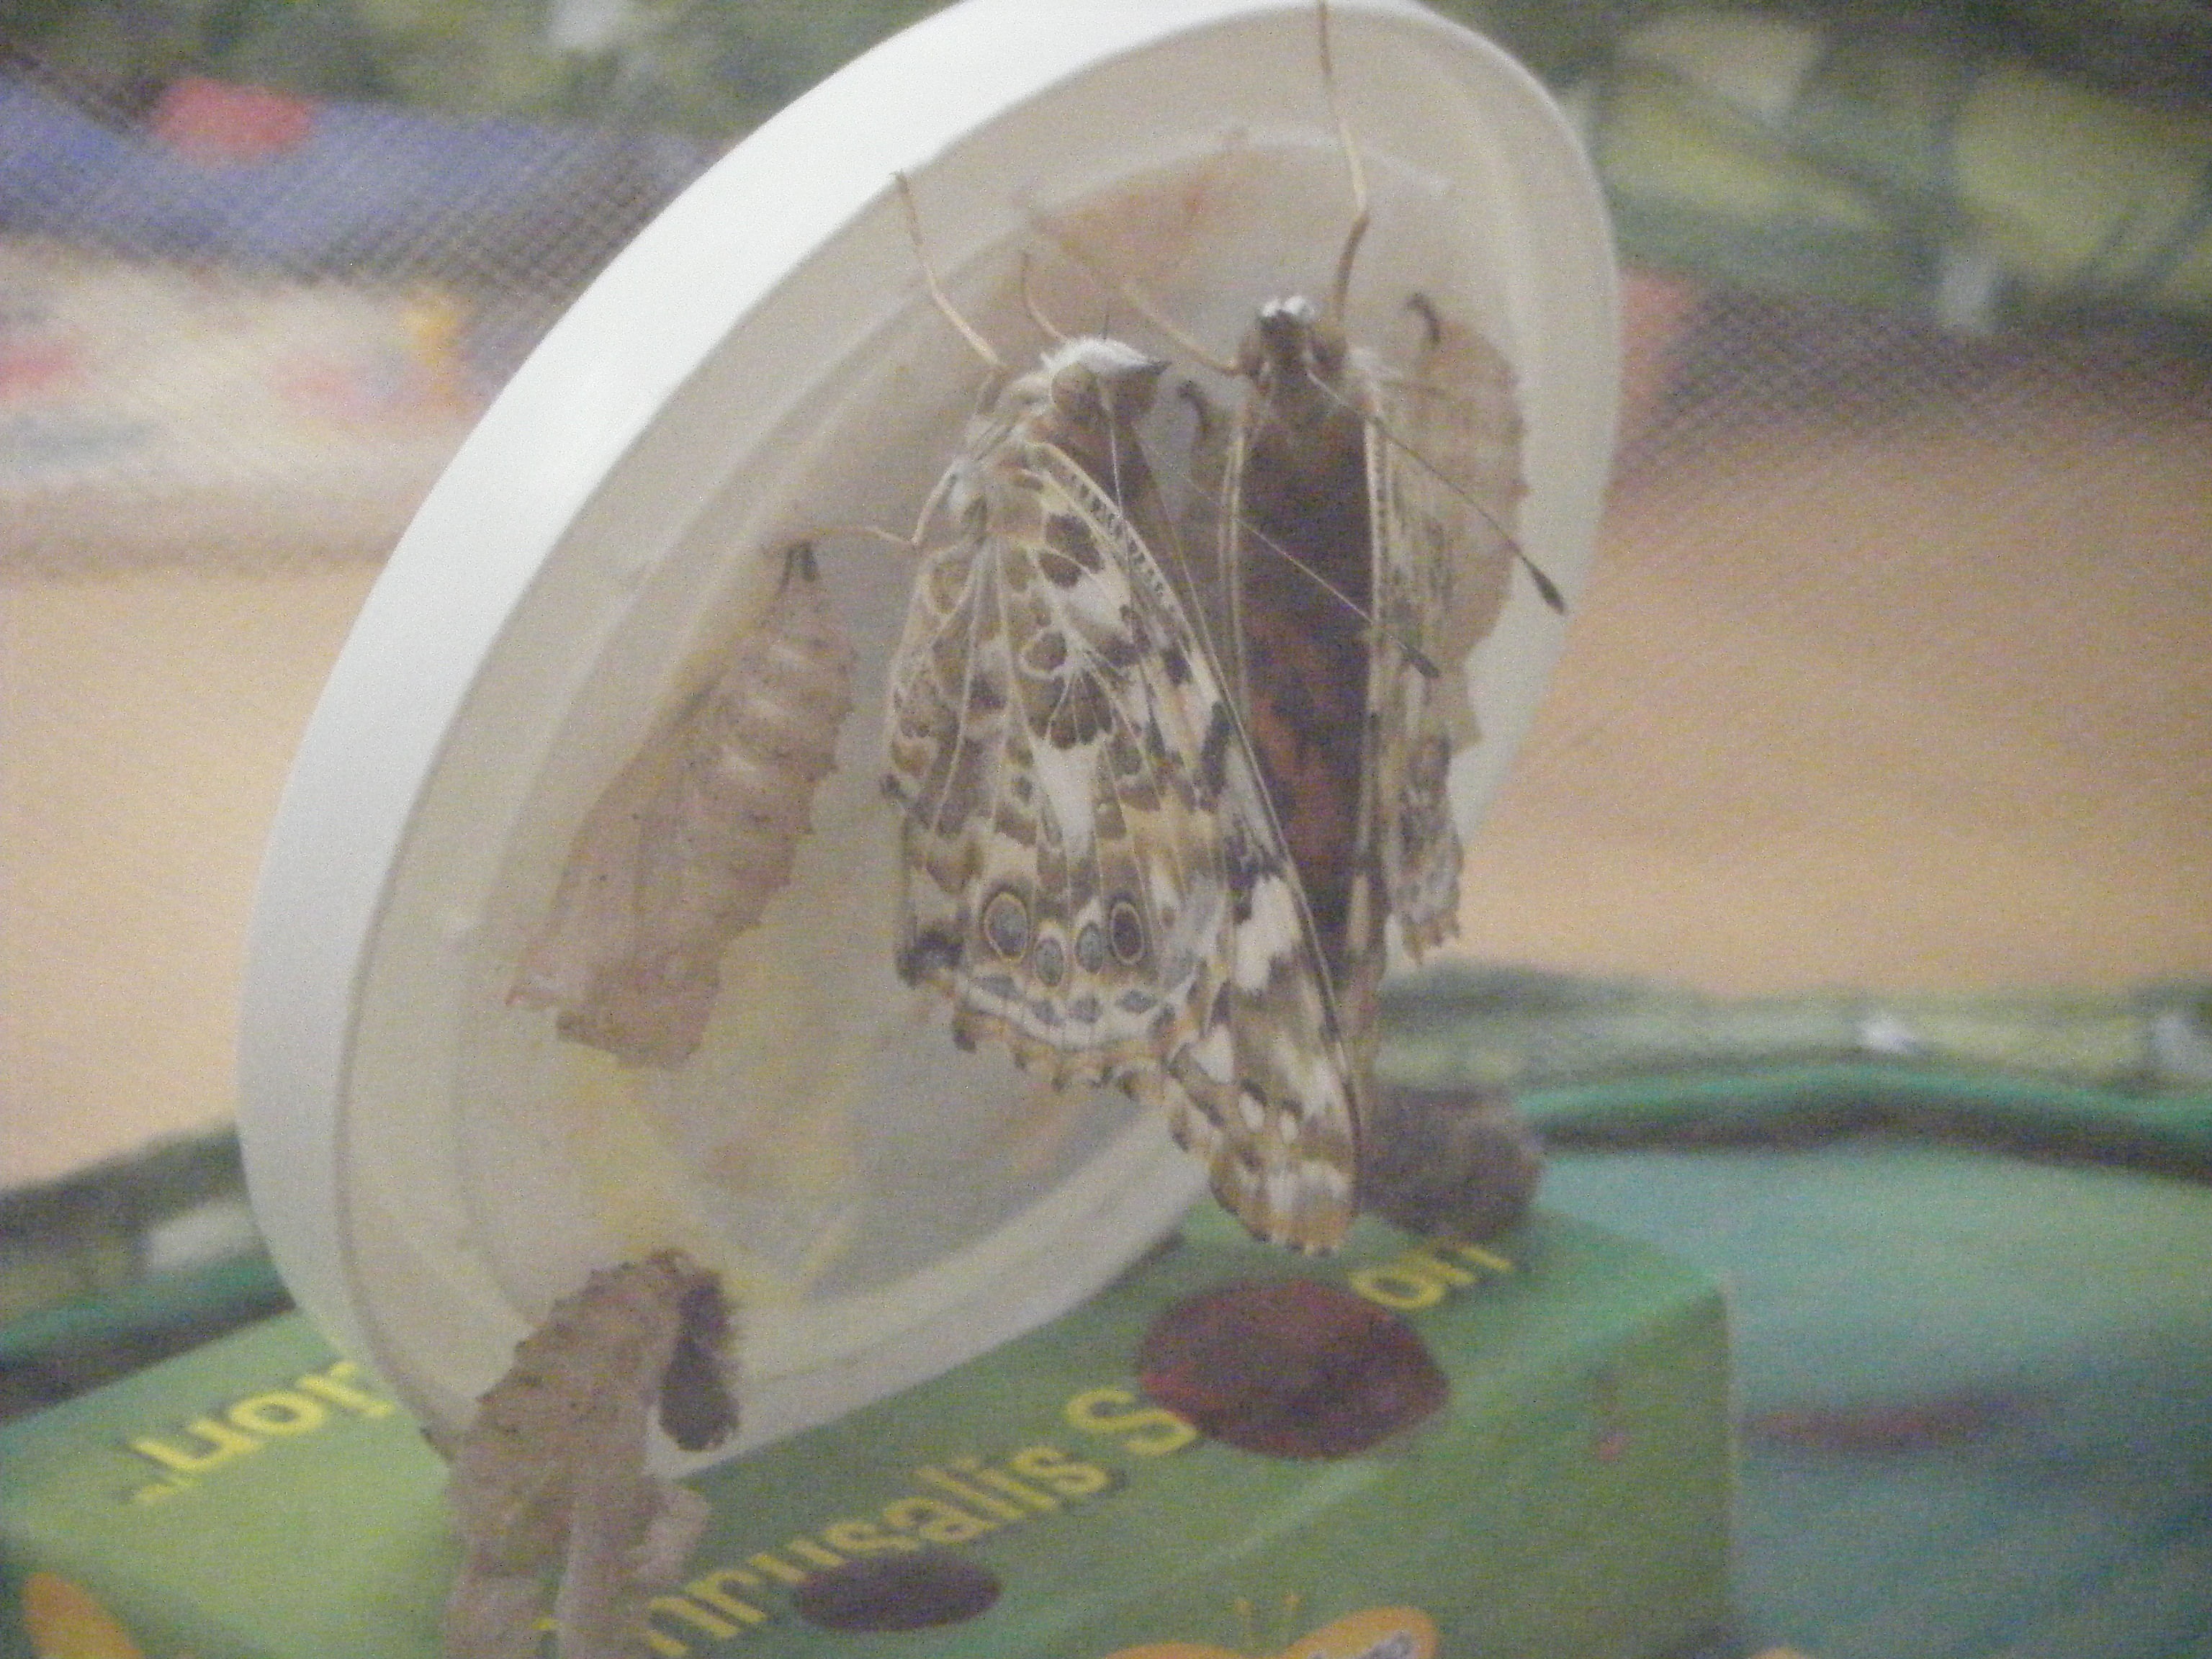 Hatching into beautiful butterflies